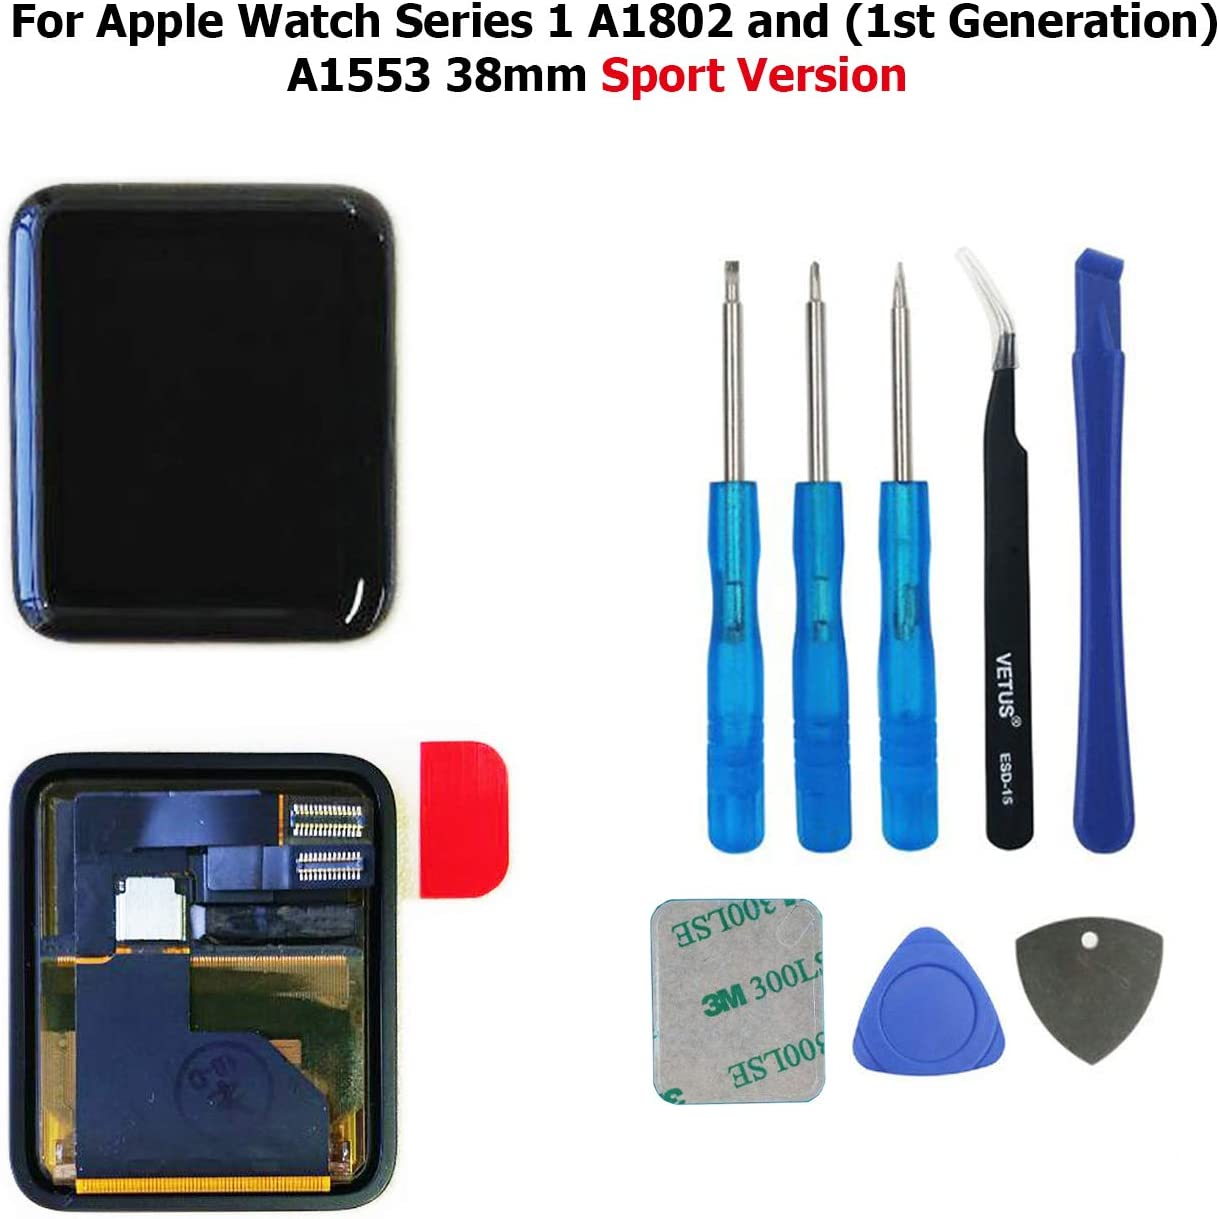 Swark LCD Display Compatible with Apple Watch Series 1 A1802 and (1st Generation) A1553 38mm Sport Version LCD Screen and Digitizer Assembly Tools